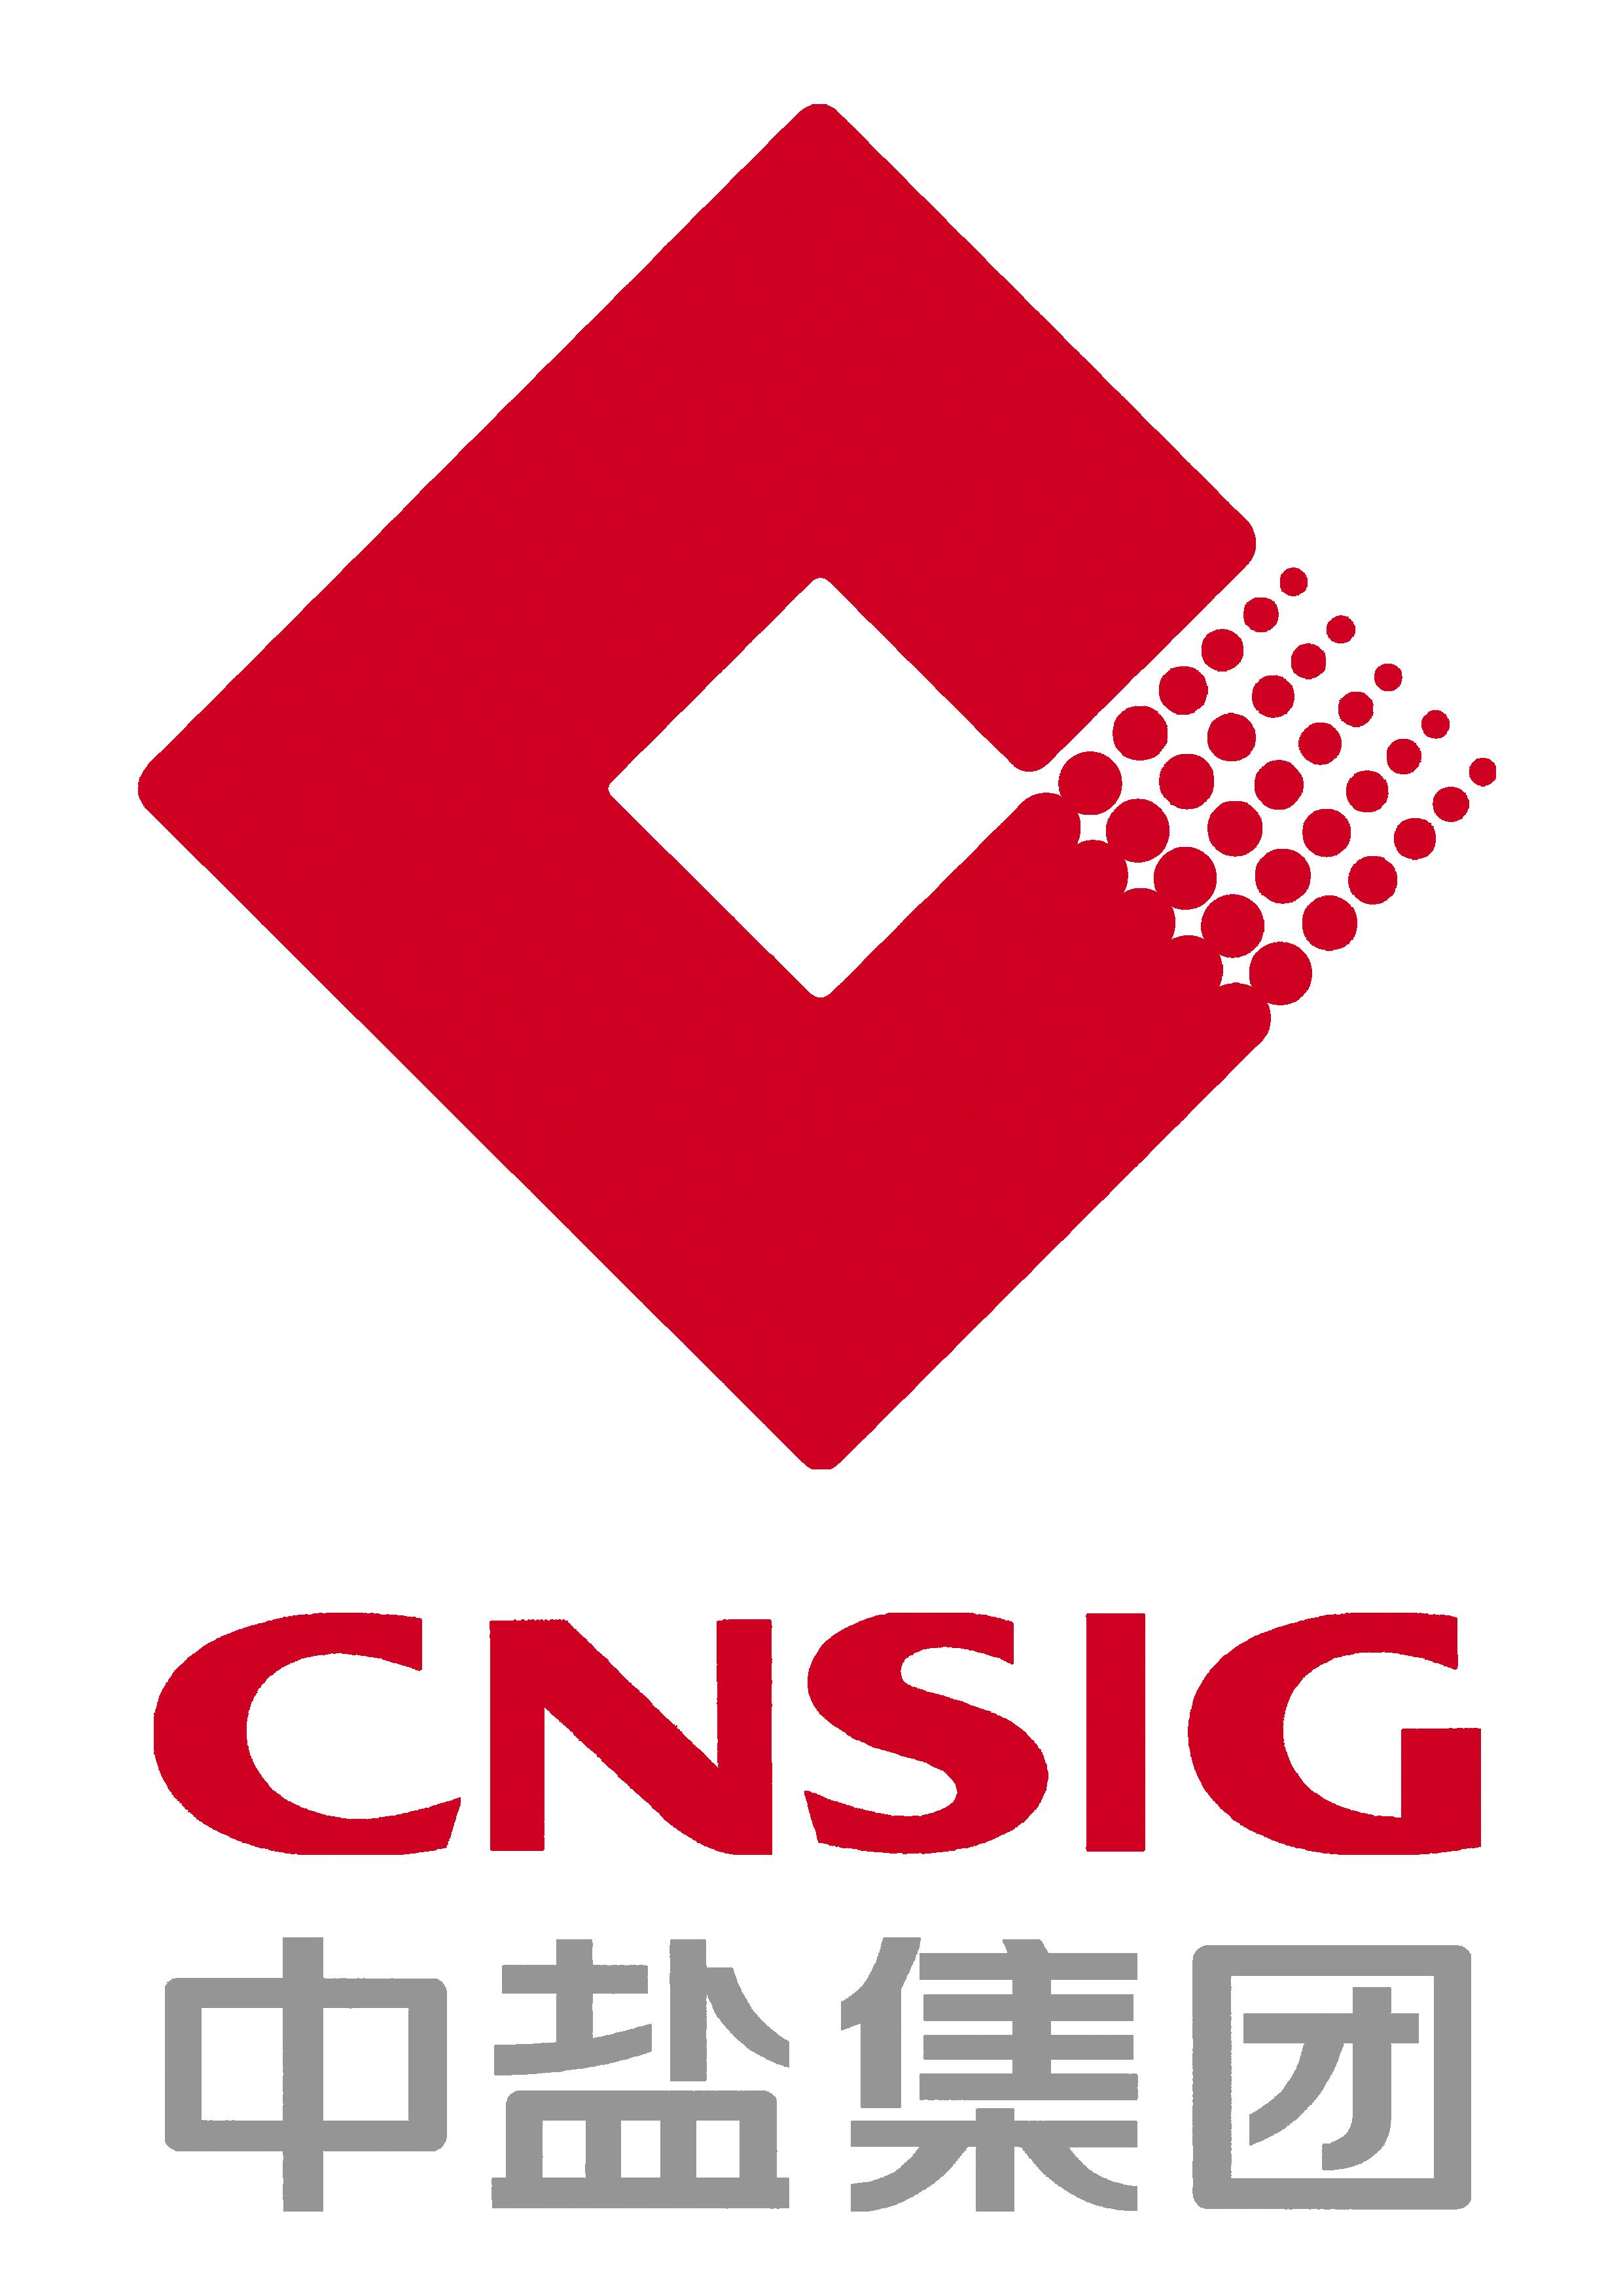 CNSG JILANTAI SALT CHEMICAL(GROUP)CO., LTD.